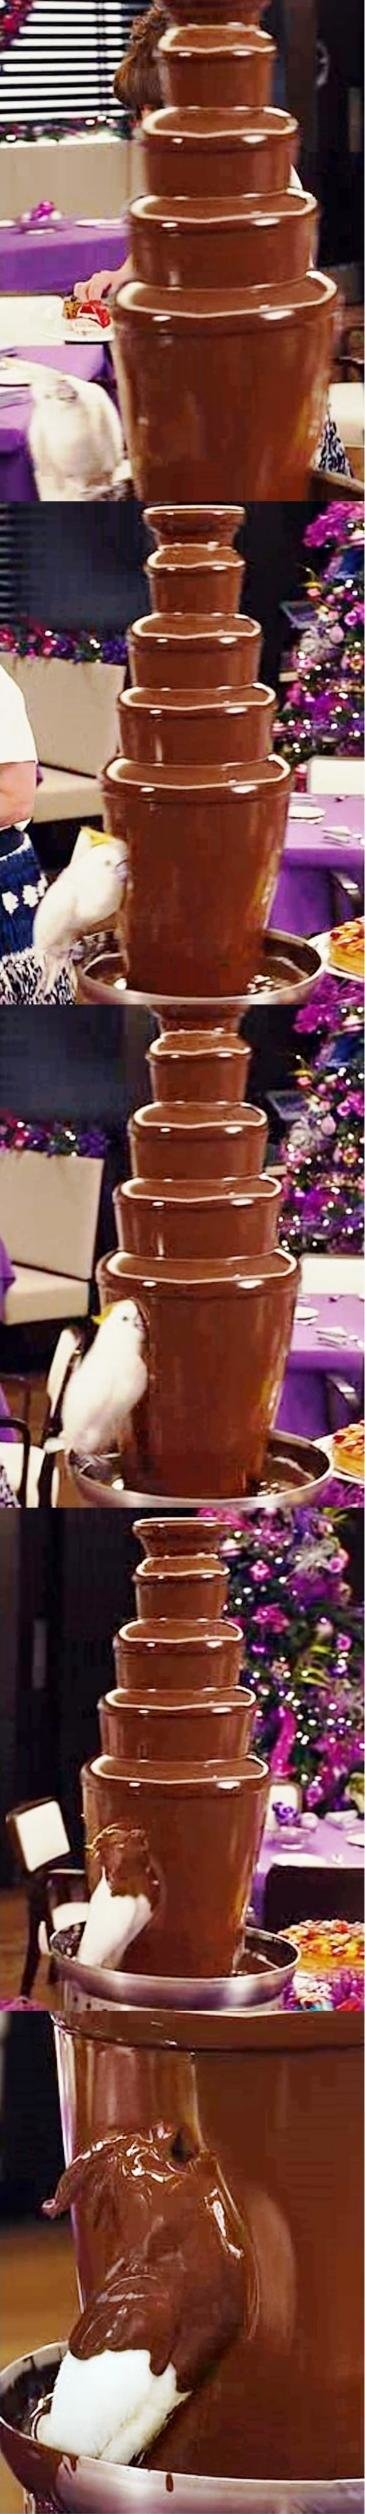 delicious chocolate covered bird